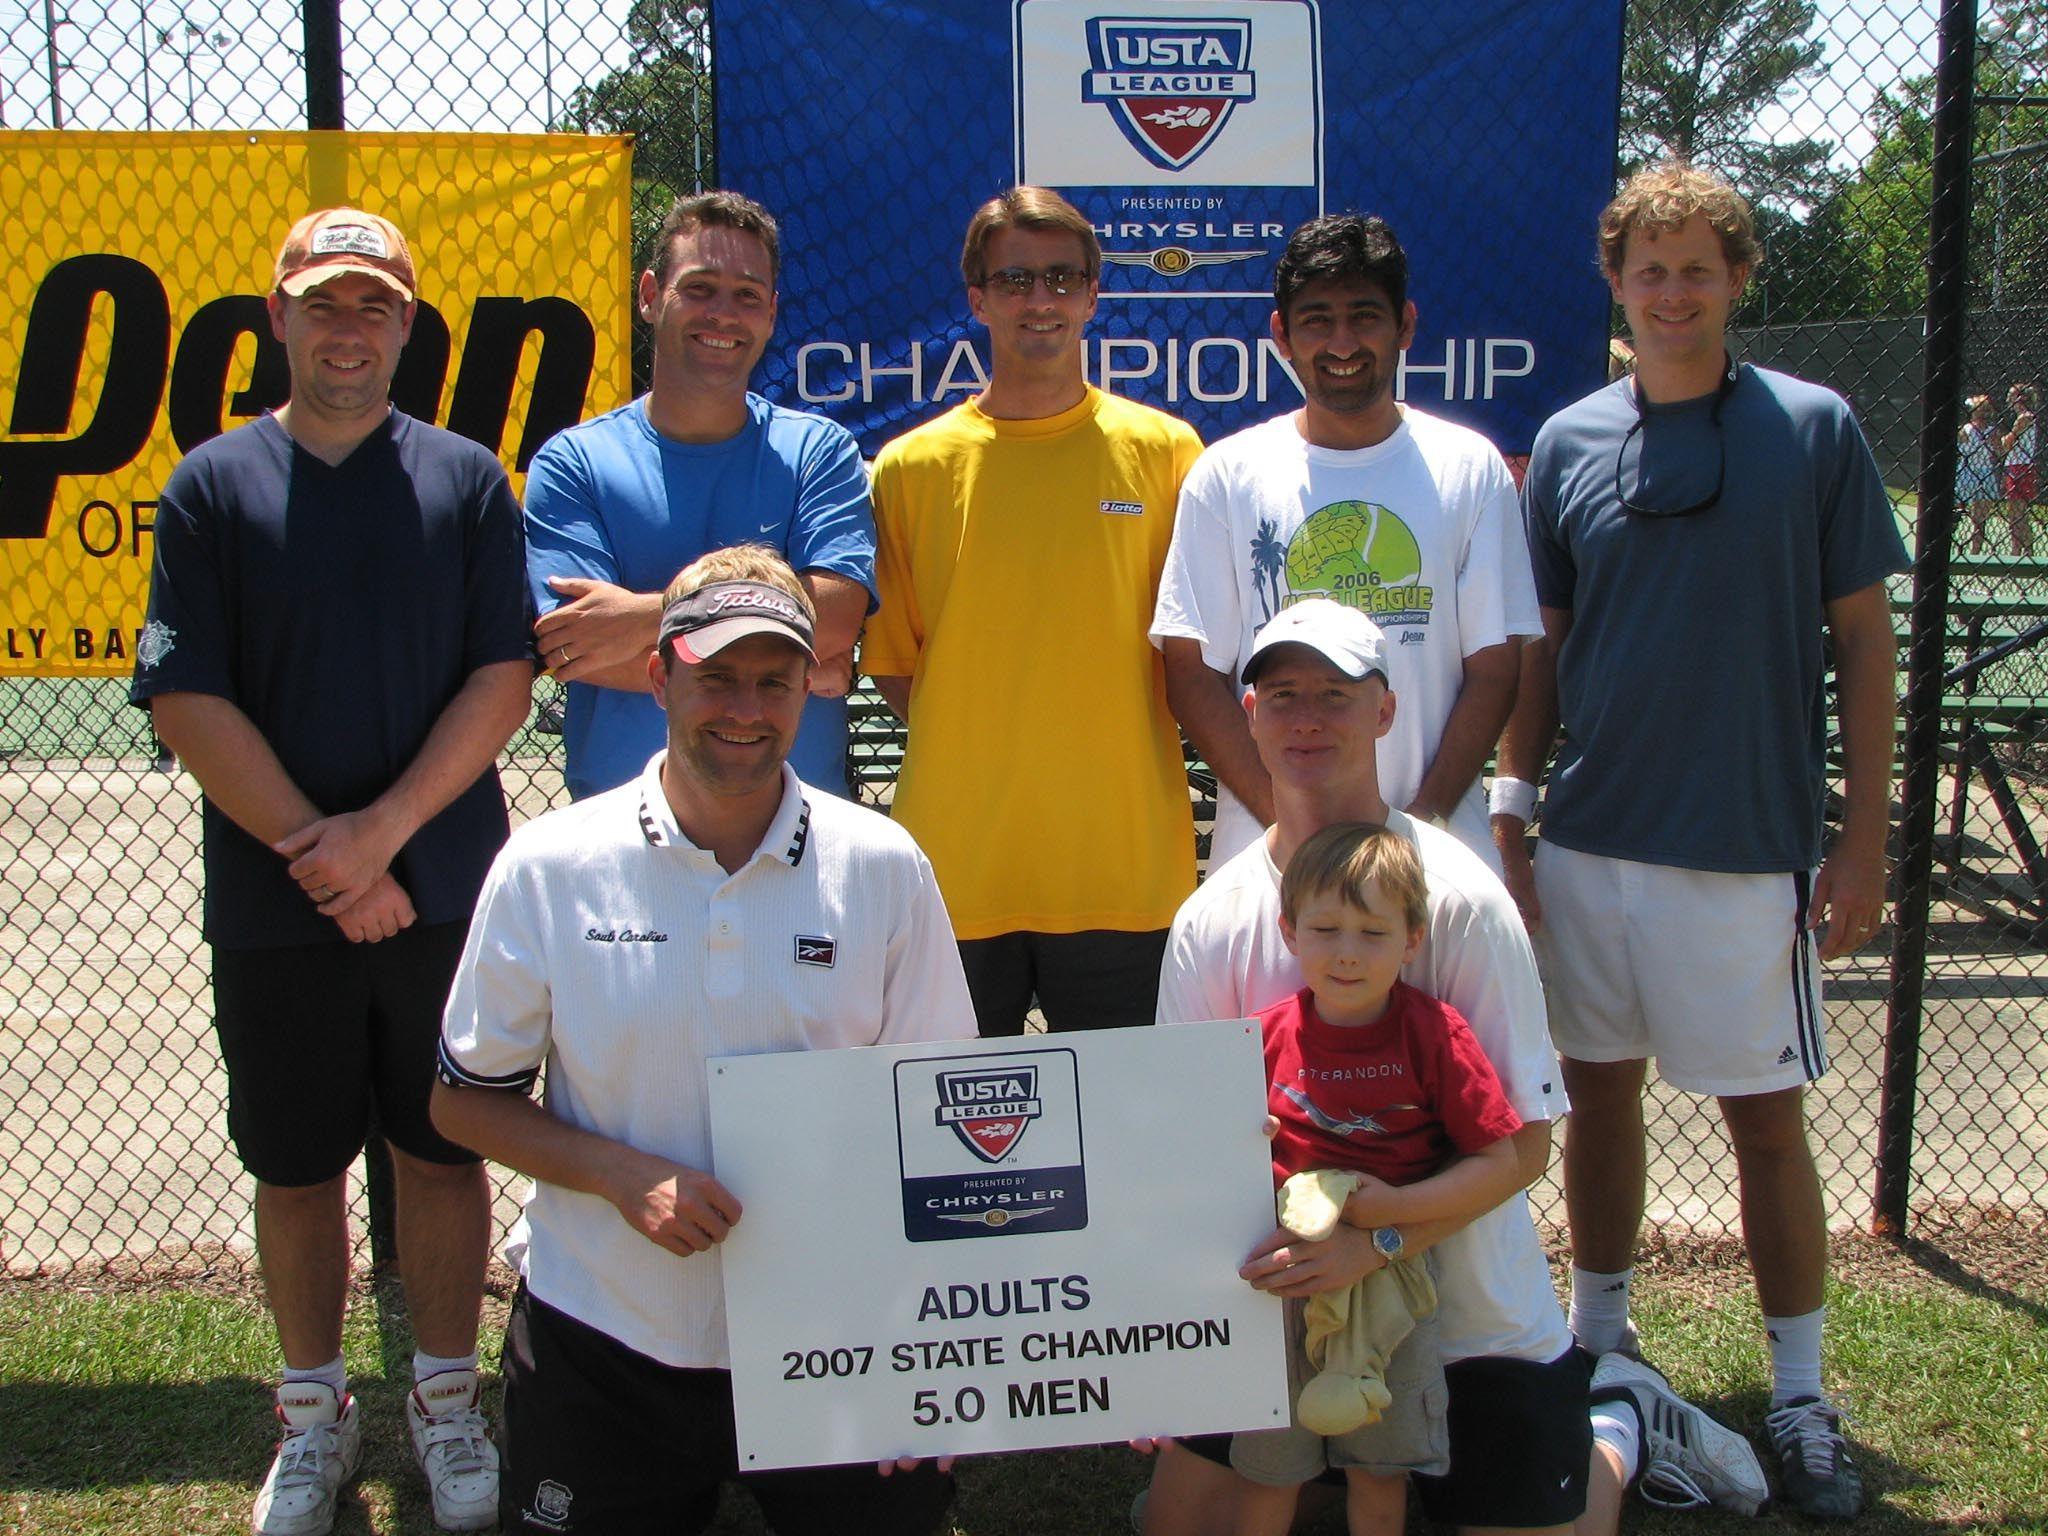 2007 5.0 Adult men Champs